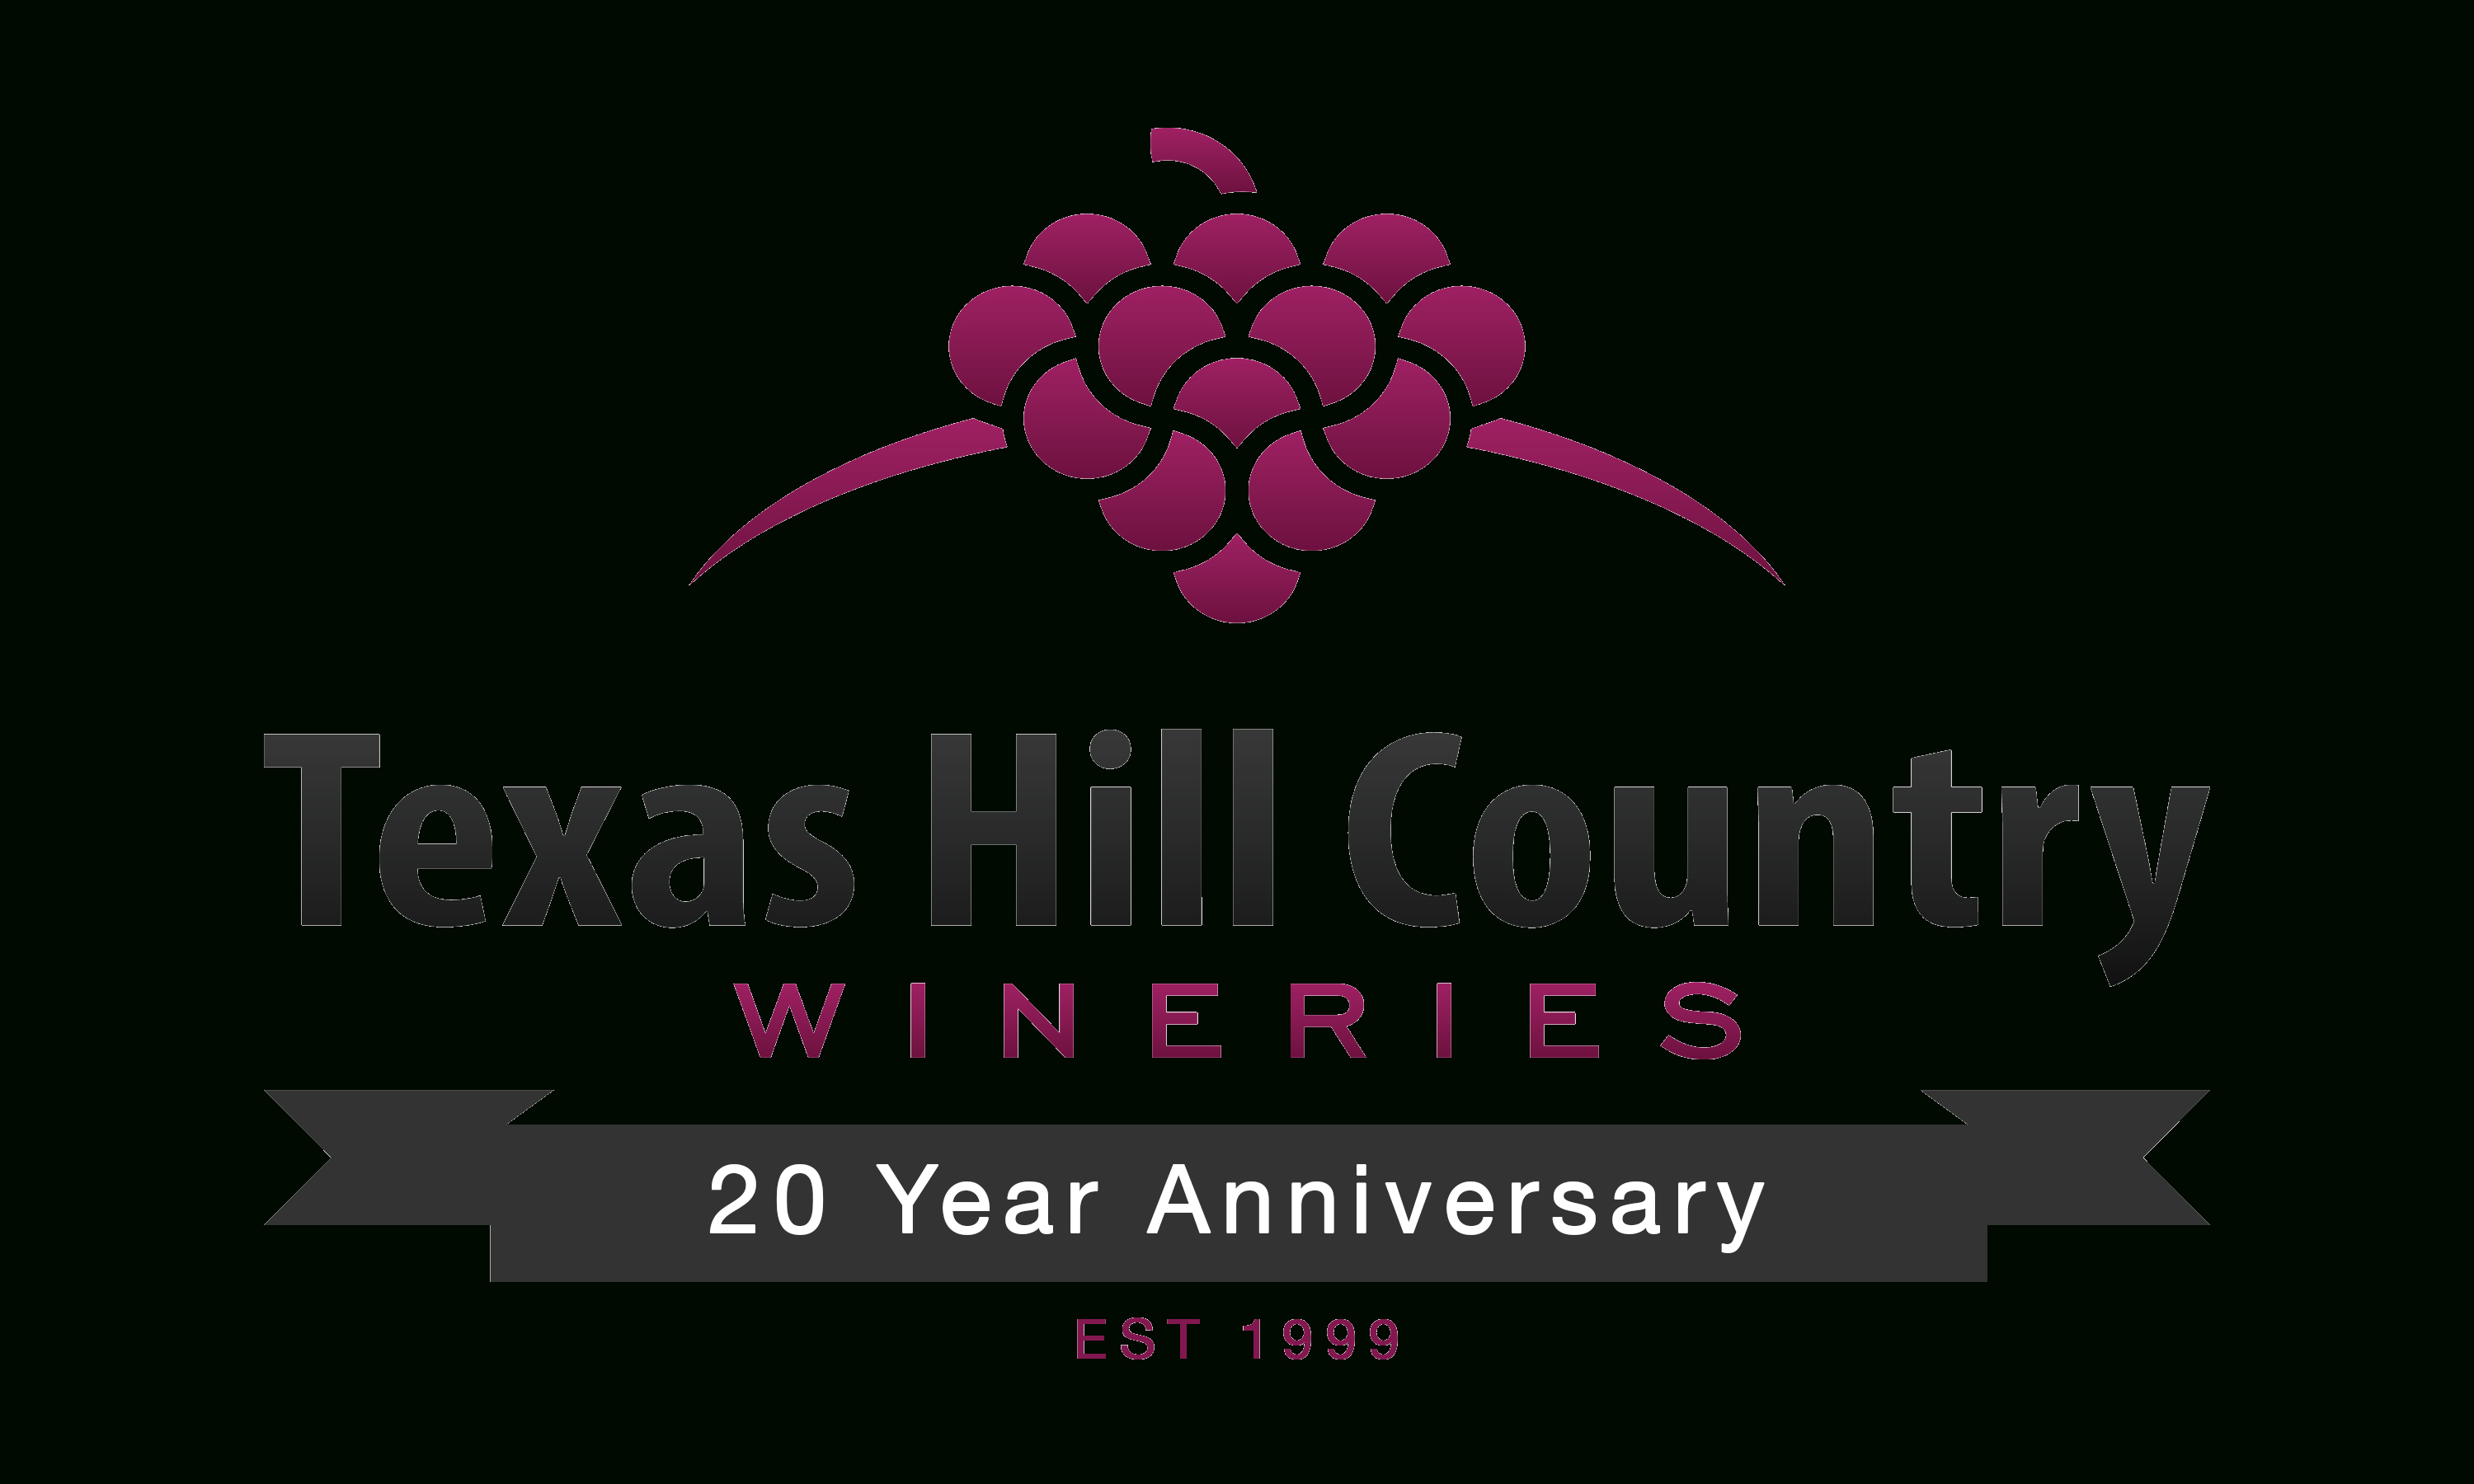 Texas Hill Country Wineries - Texas Hill Country Wineries - Texas Hill Country Wineries Map